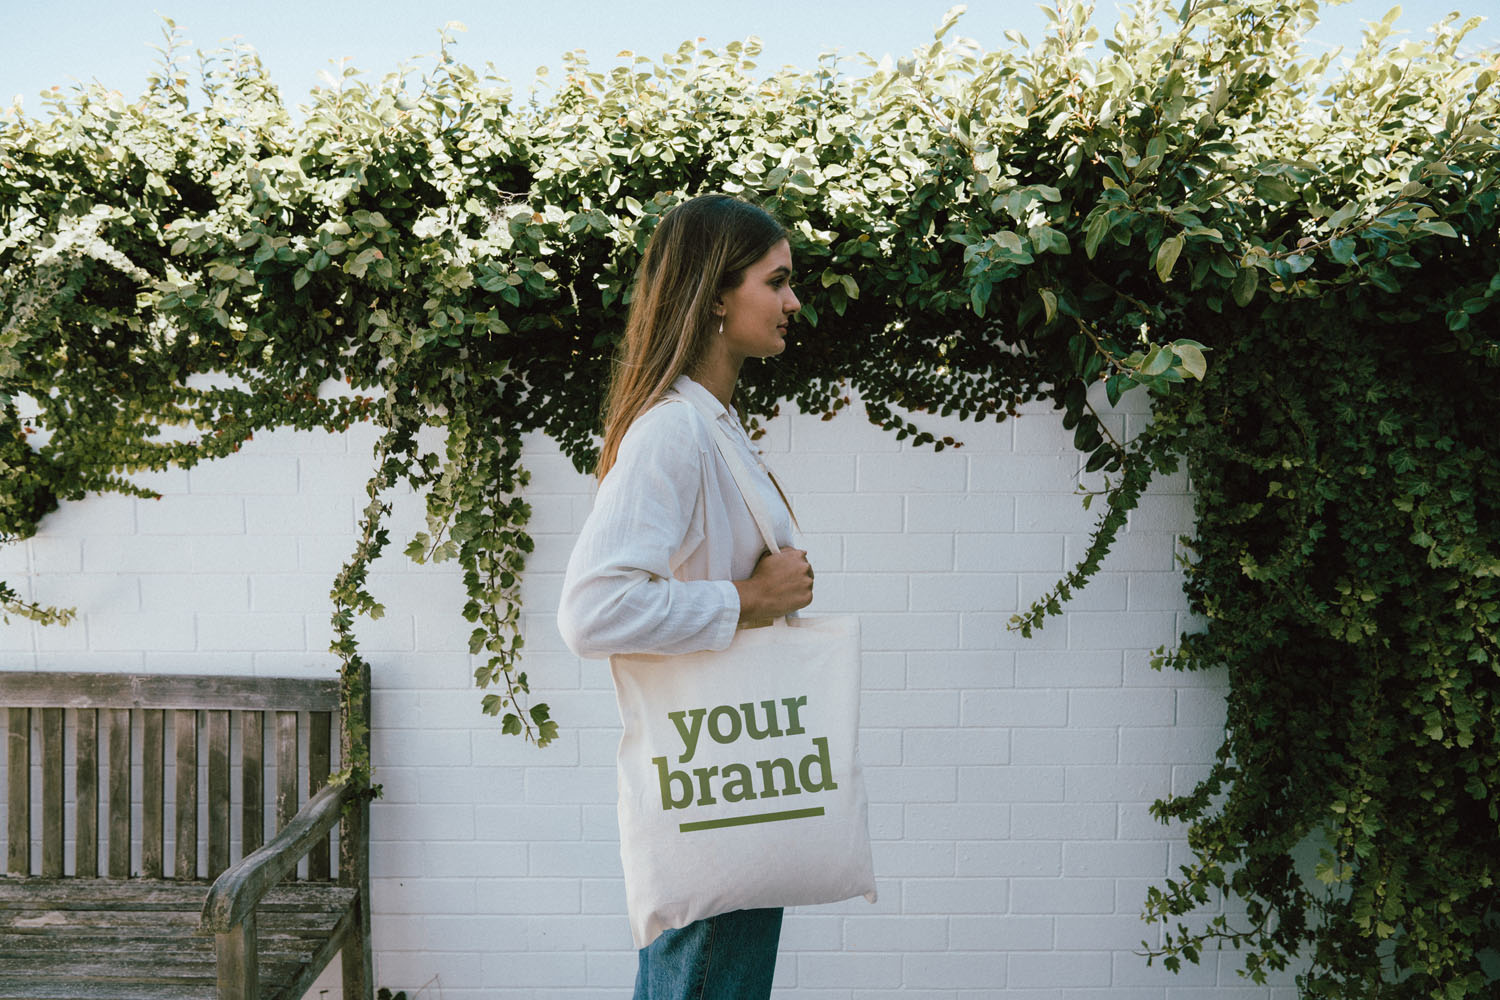 WA based Platinum Bags delivers reusable branded bags as an opportunity for environmentally aware marketers